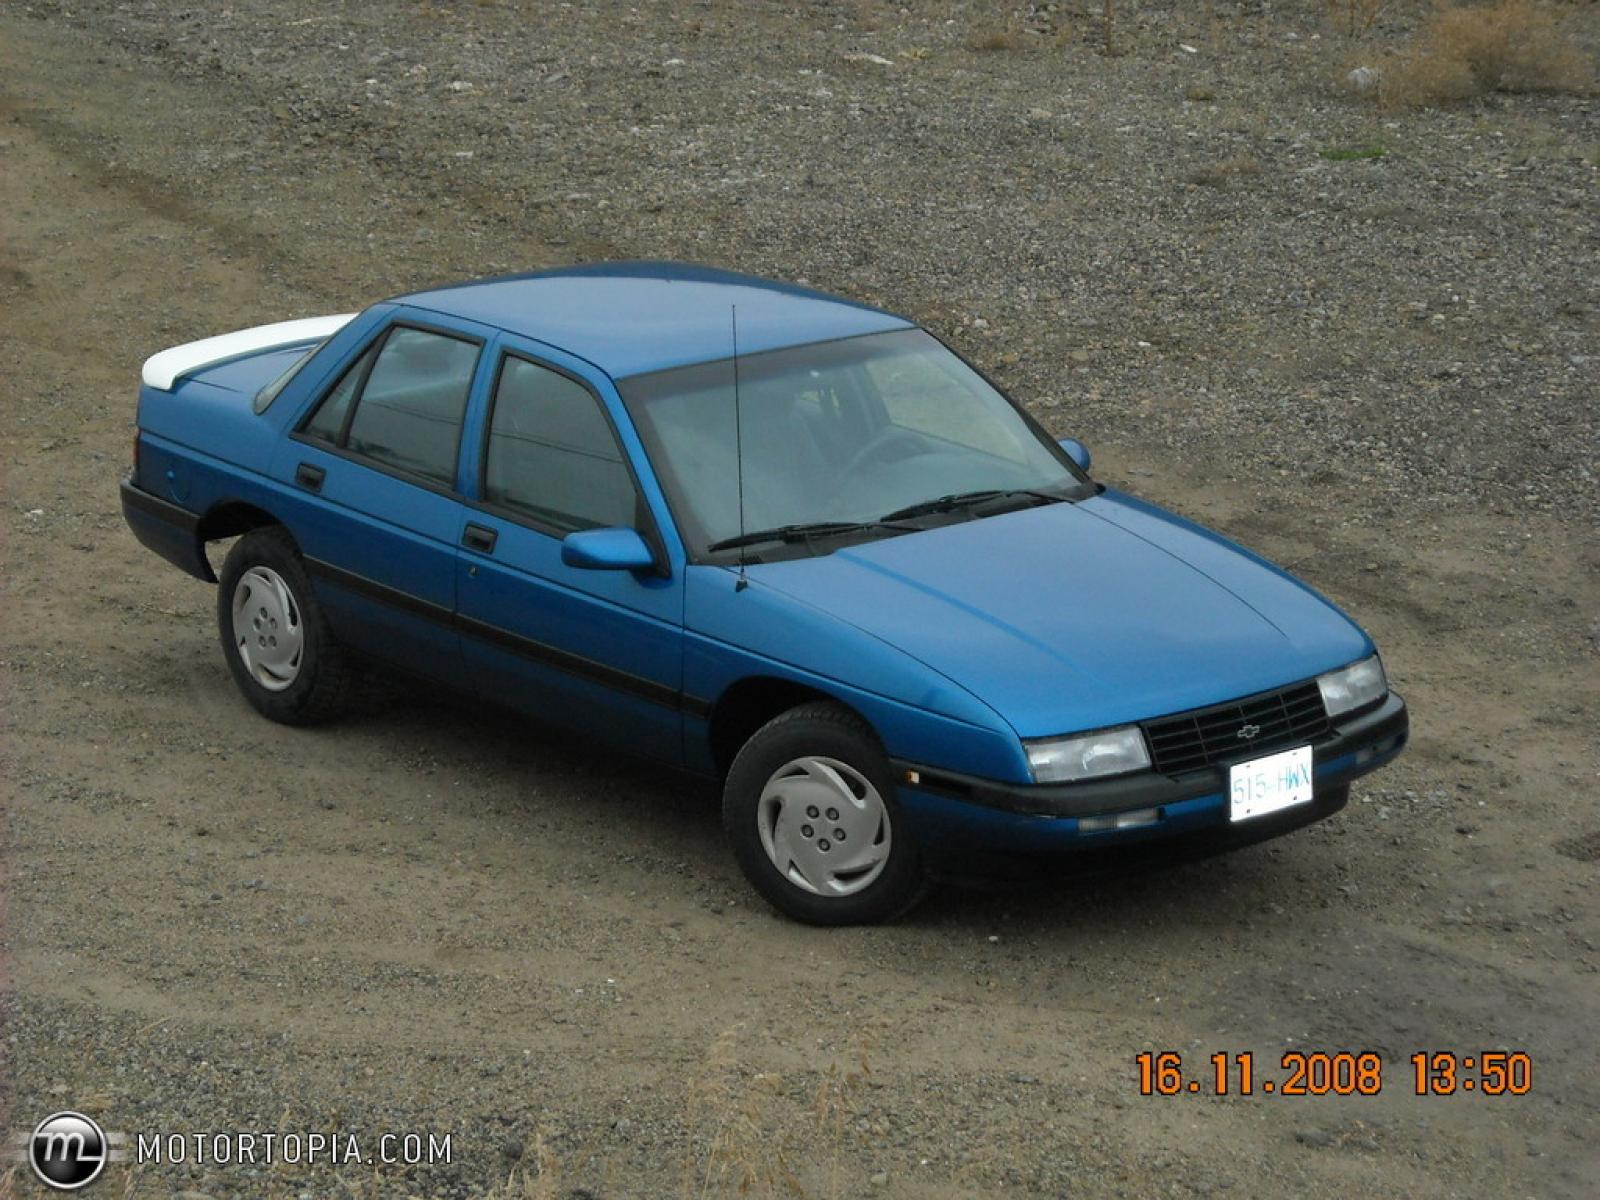 1993 Chevy Corsica Manual Various Owner Manual Guide \u2022 Chevy Throttle  Body Diagram 1993 Chevy Corsica Engine Diagram